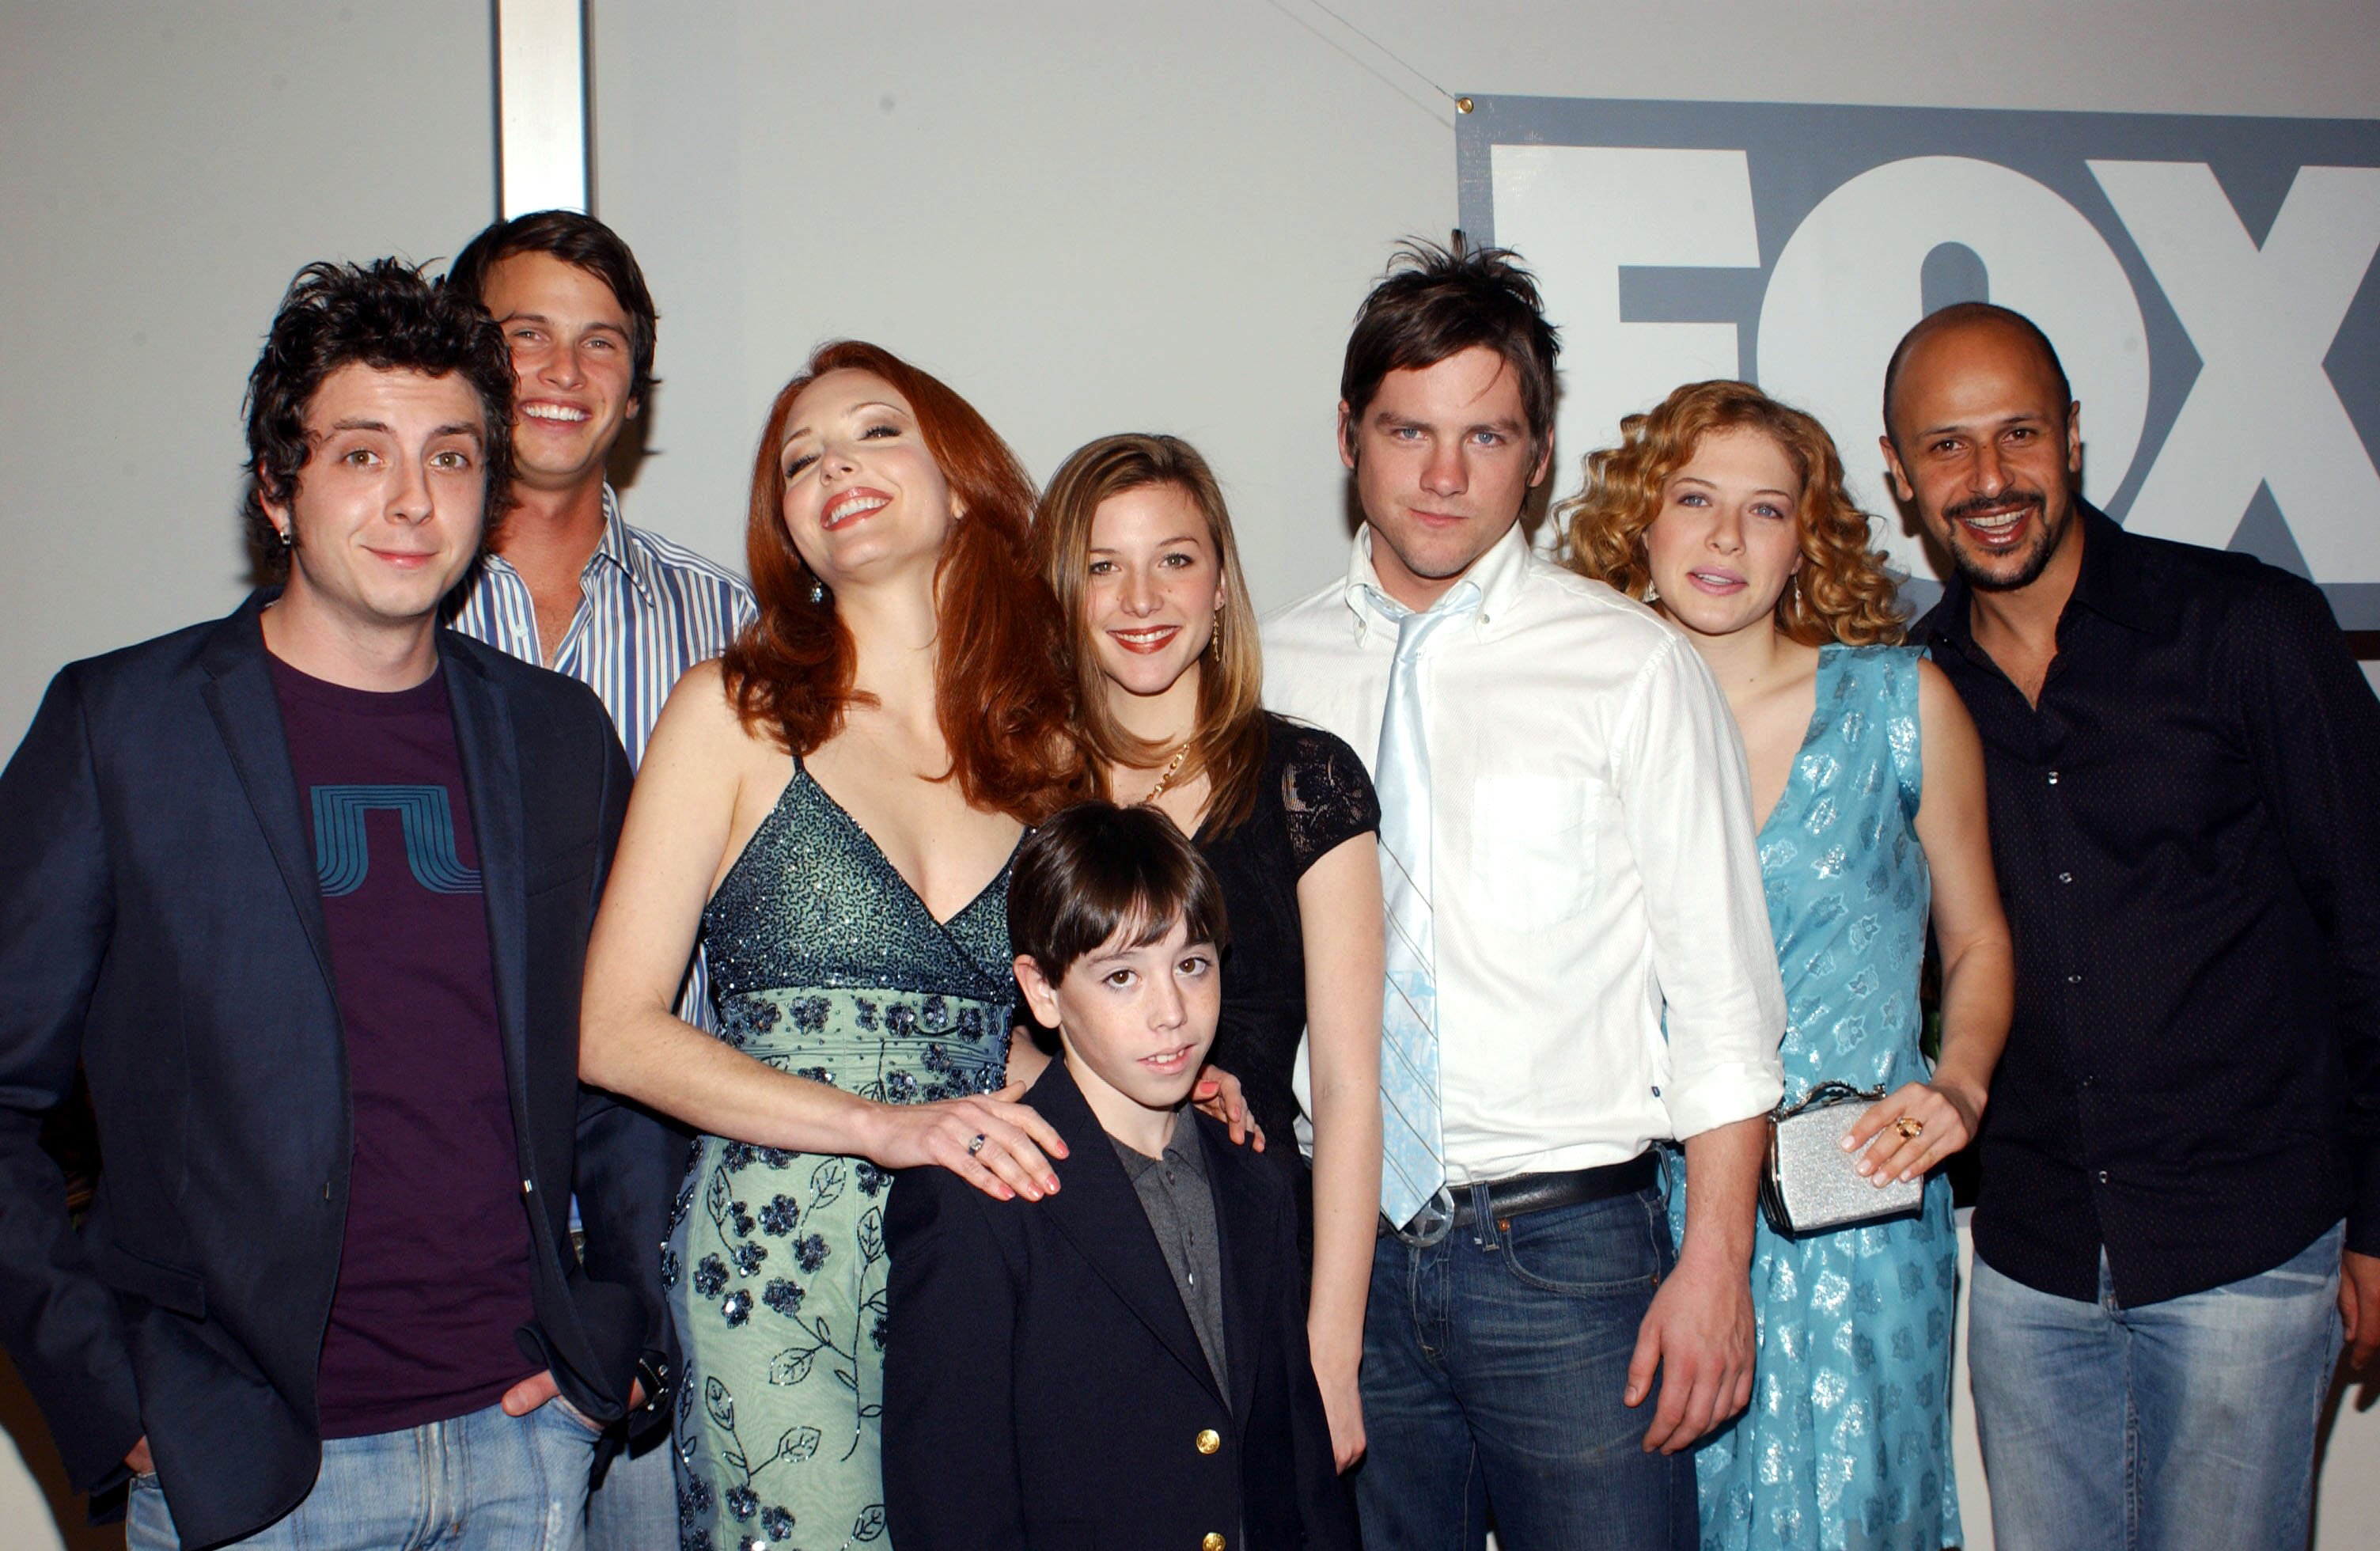 Cast of 'Life On A Stick' - Ryan Bellville, Charlie Finn, Amy Yasbeck, Frankie Ryan Manriquez, Saige Thompson, Zach Knighton, Rachelle Lefevre and Maz JobraniFOX NETWORK TCA WHITE HOT WINTER PARTY, LOS ANGELES, AMERICA - 17 JAN 2005